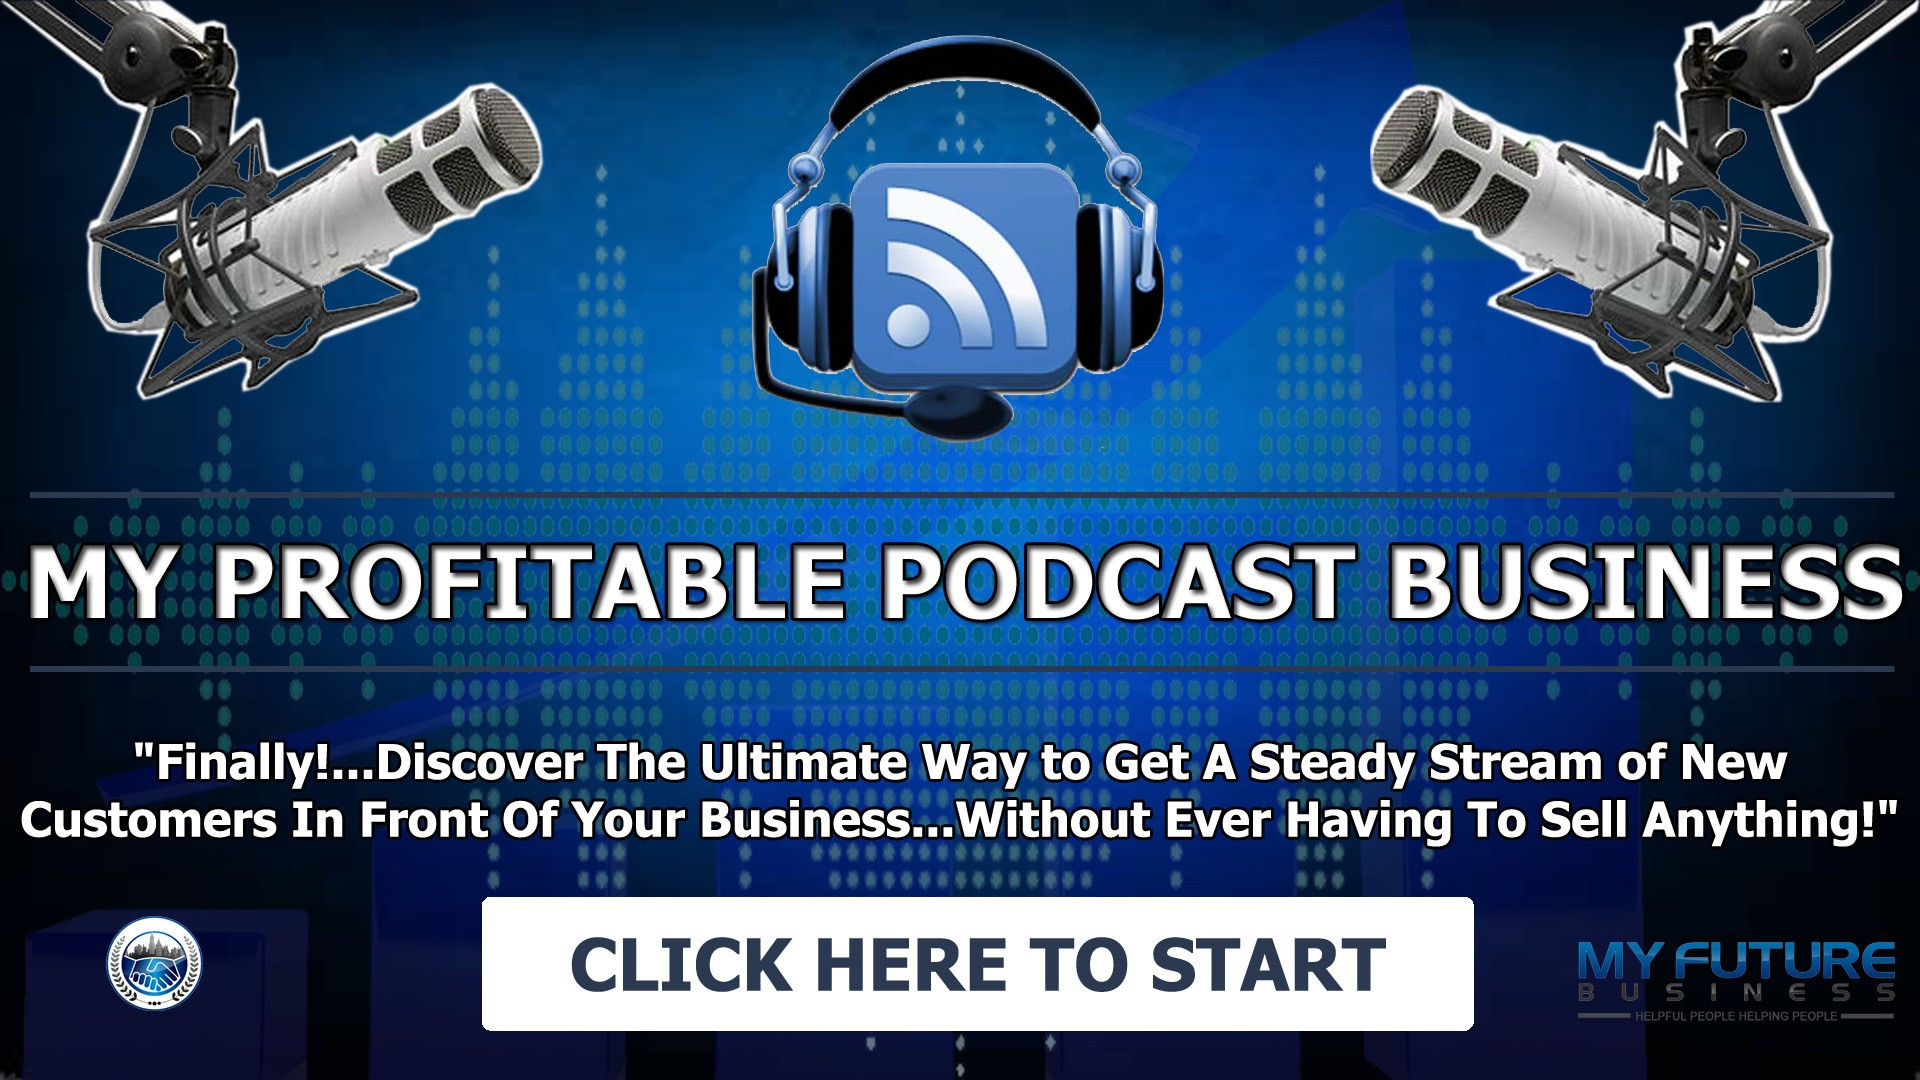 My Profitable Podcast Business